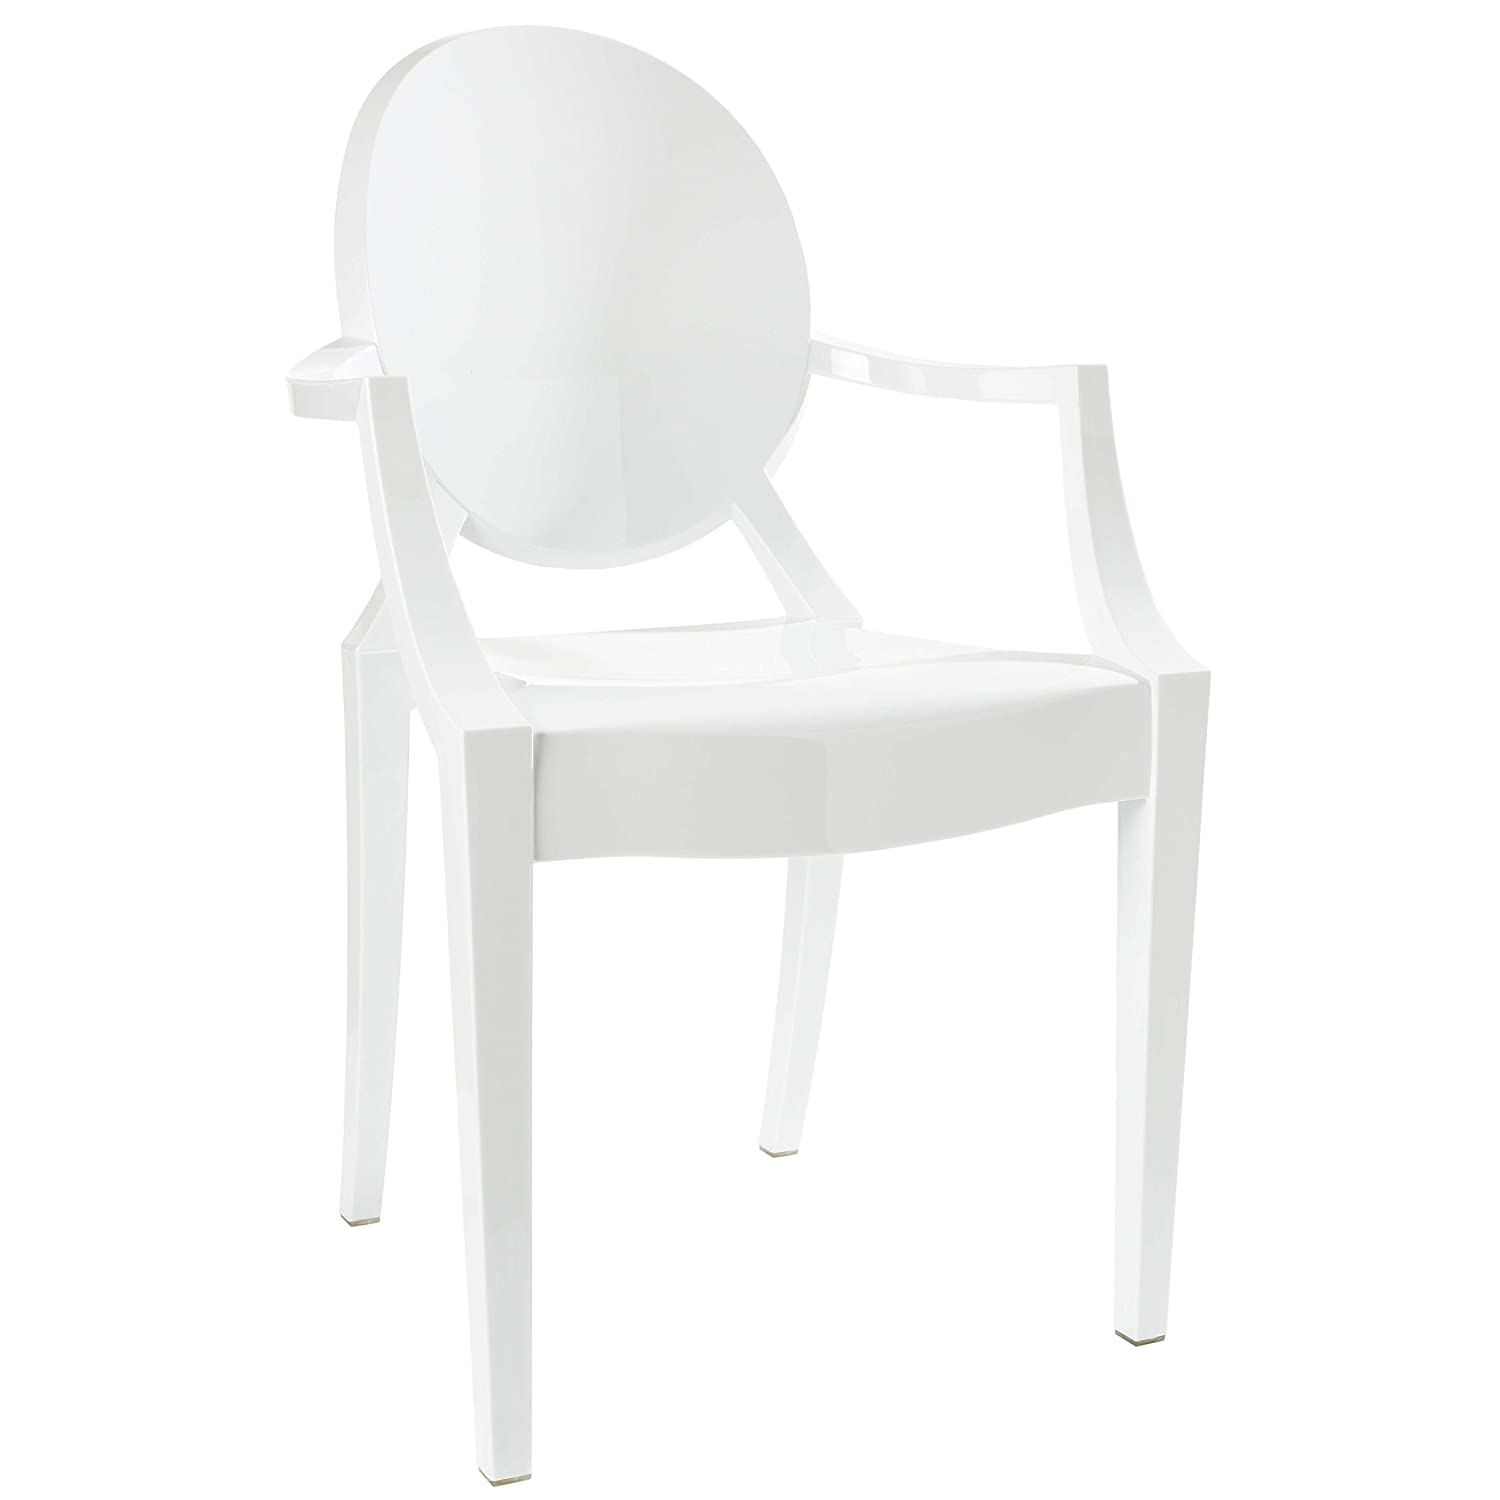 White Louis ghost arm chair